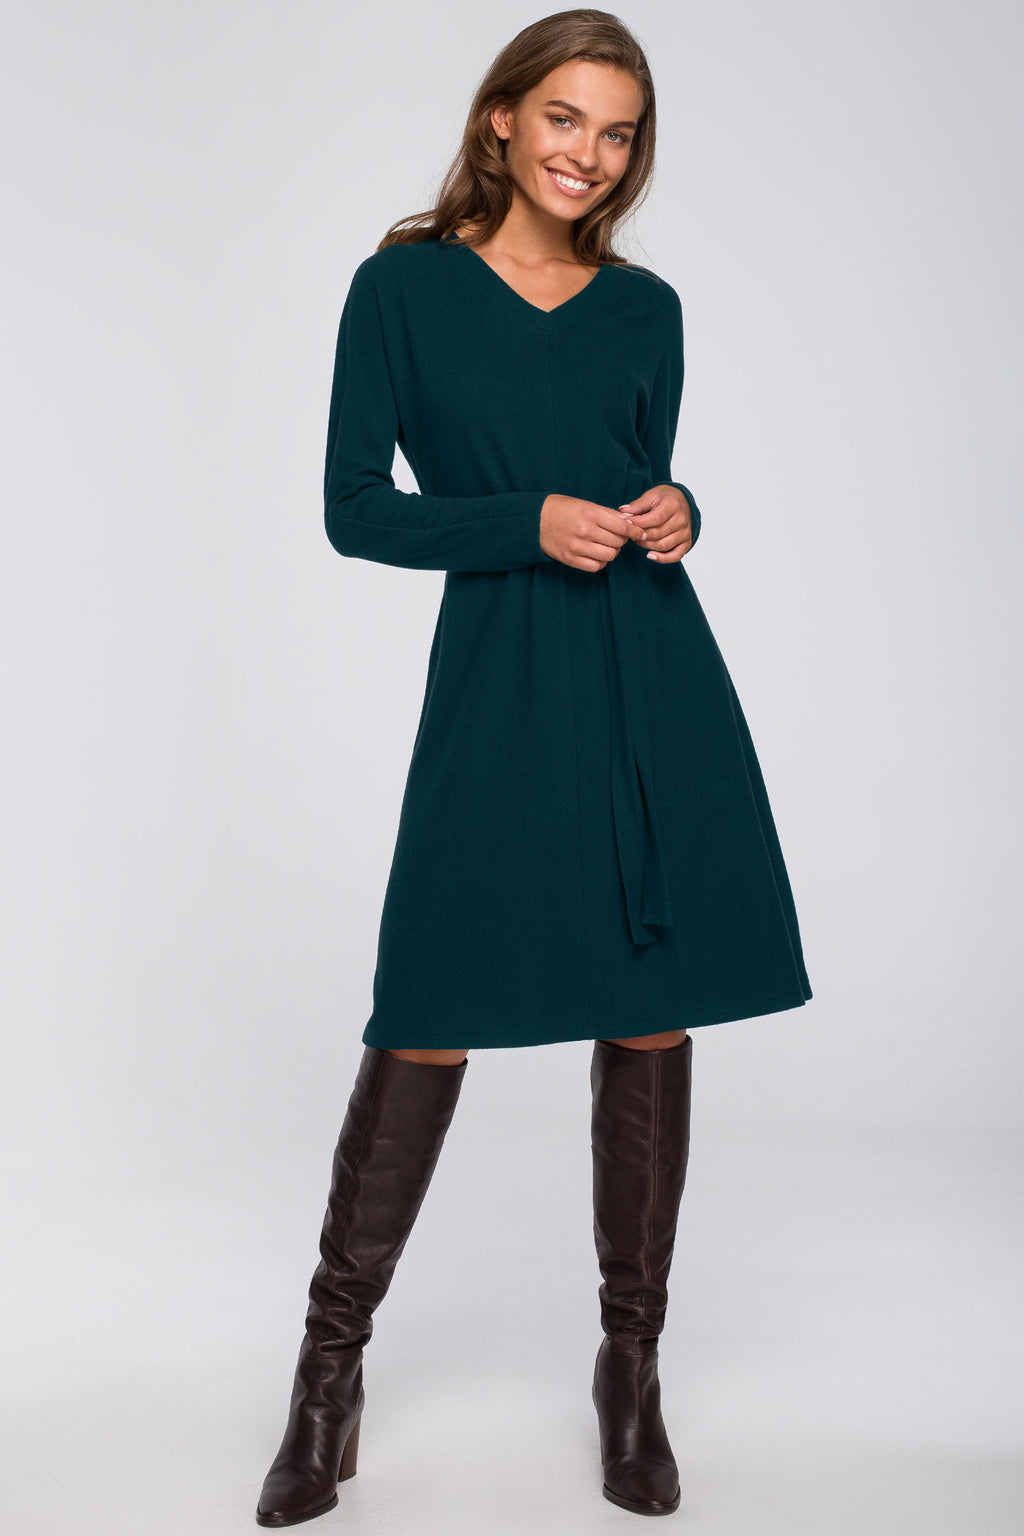 Green A Line Viscose Dress With A Belt - So Chic Boutique